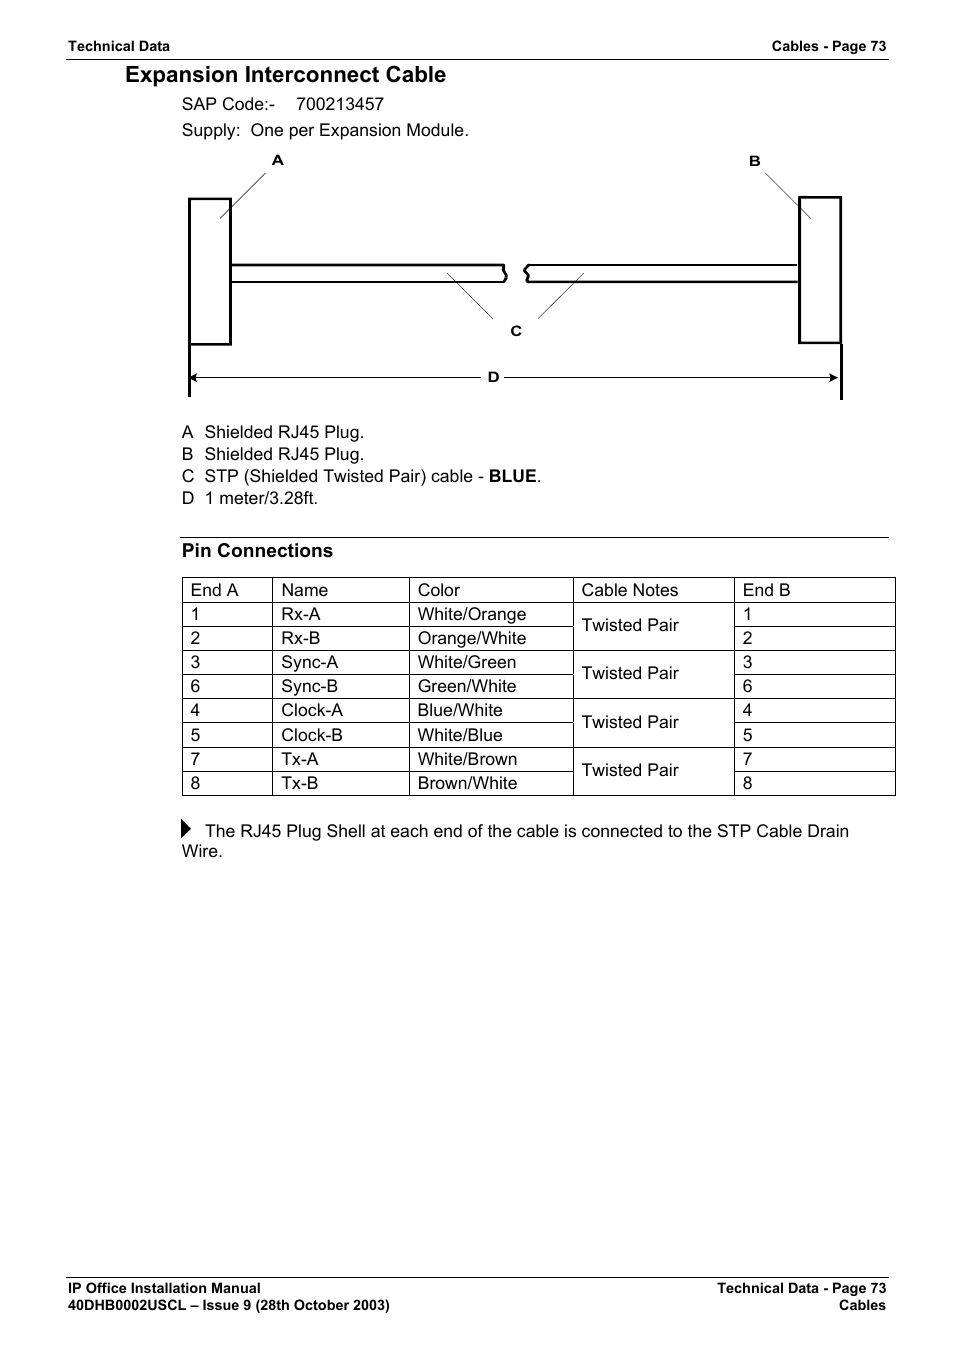 medium resolution of expansion interconnect cable pin connections avaya ip office phone user manual page 73 86